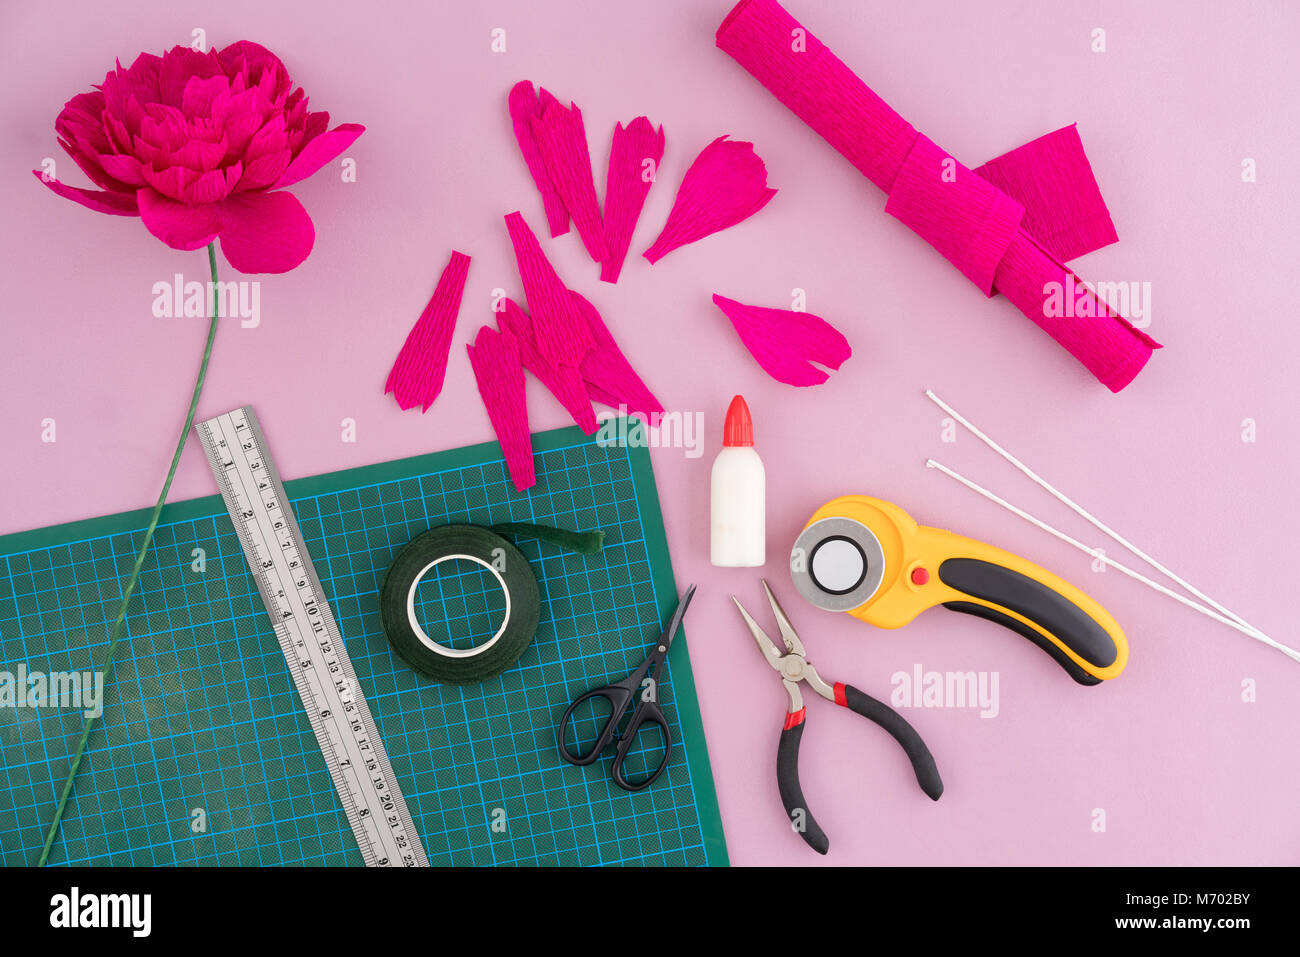 Making Paper Flowers Stock Photo 176408175 Alamy